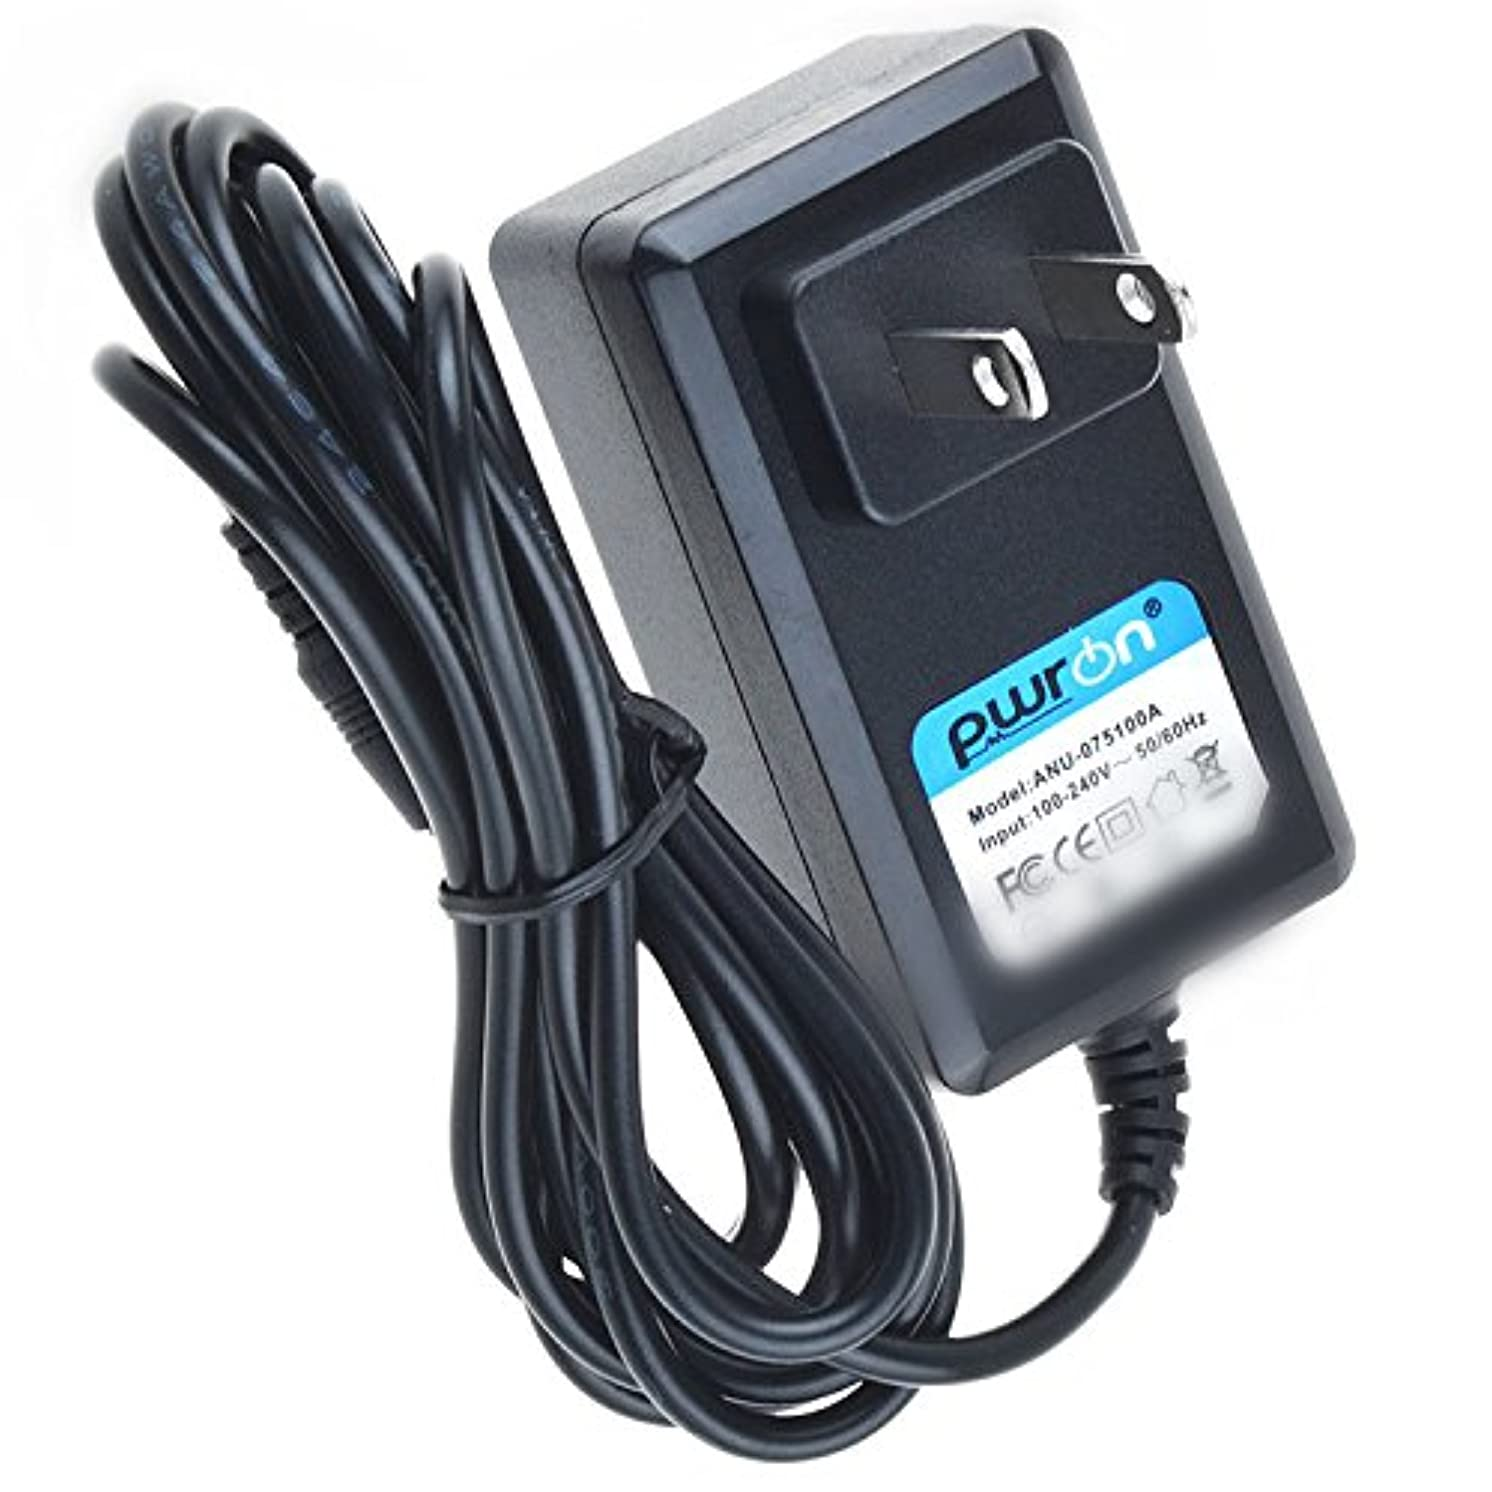 PwrON AC to DC Adapter for Schwinn Fitness SR23 Recumbent Exercise Cycle Bike Power Supply Cord